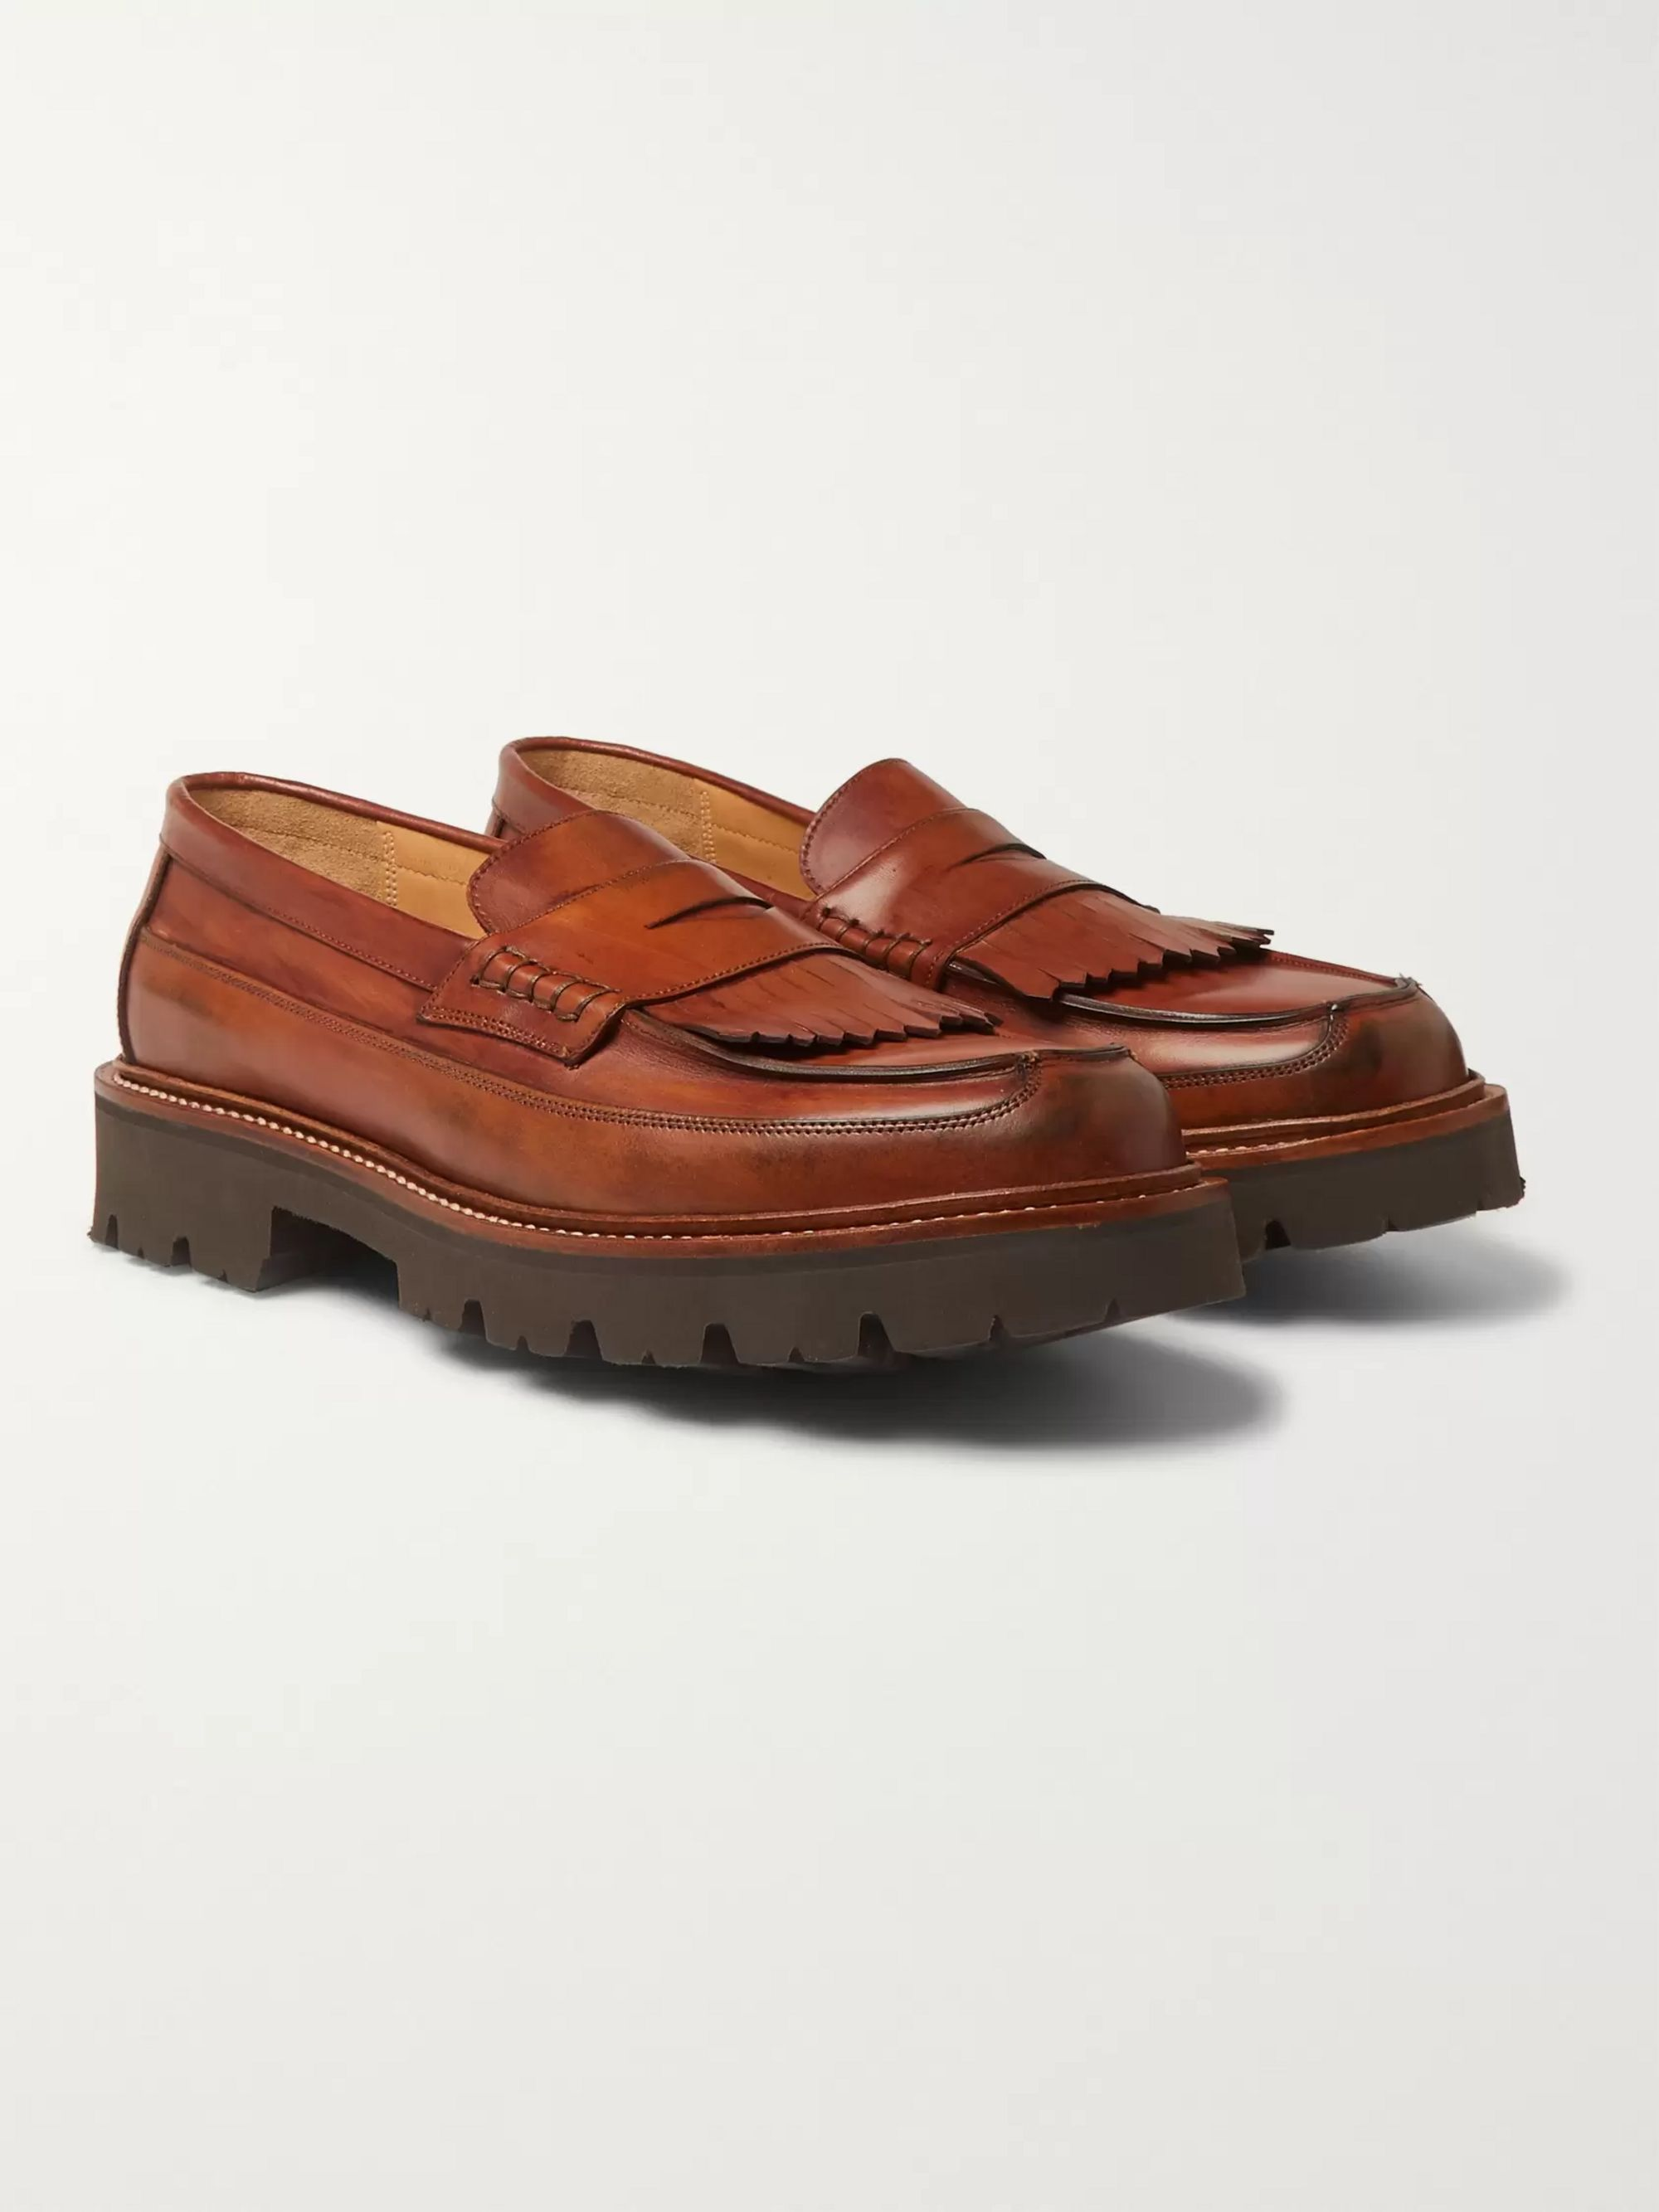 Grenson Leather Kiltie Loafers